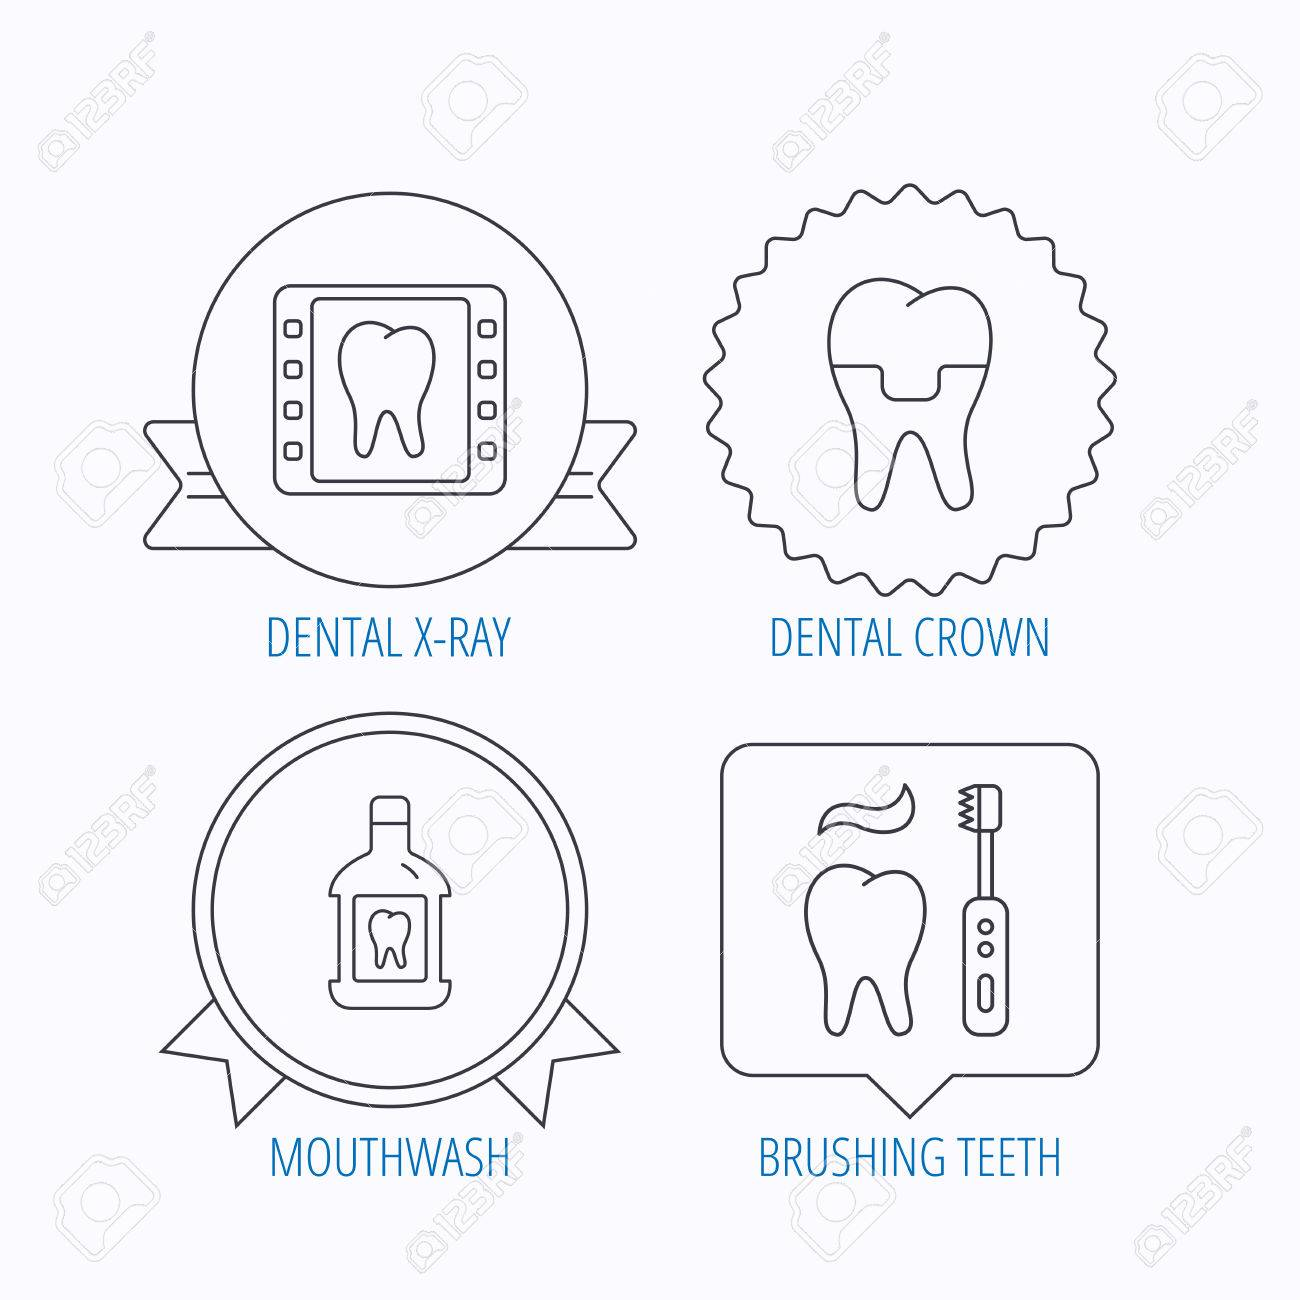 hight resolution of dental crown x ray and brushing teeth icons mouthwash linear sign award